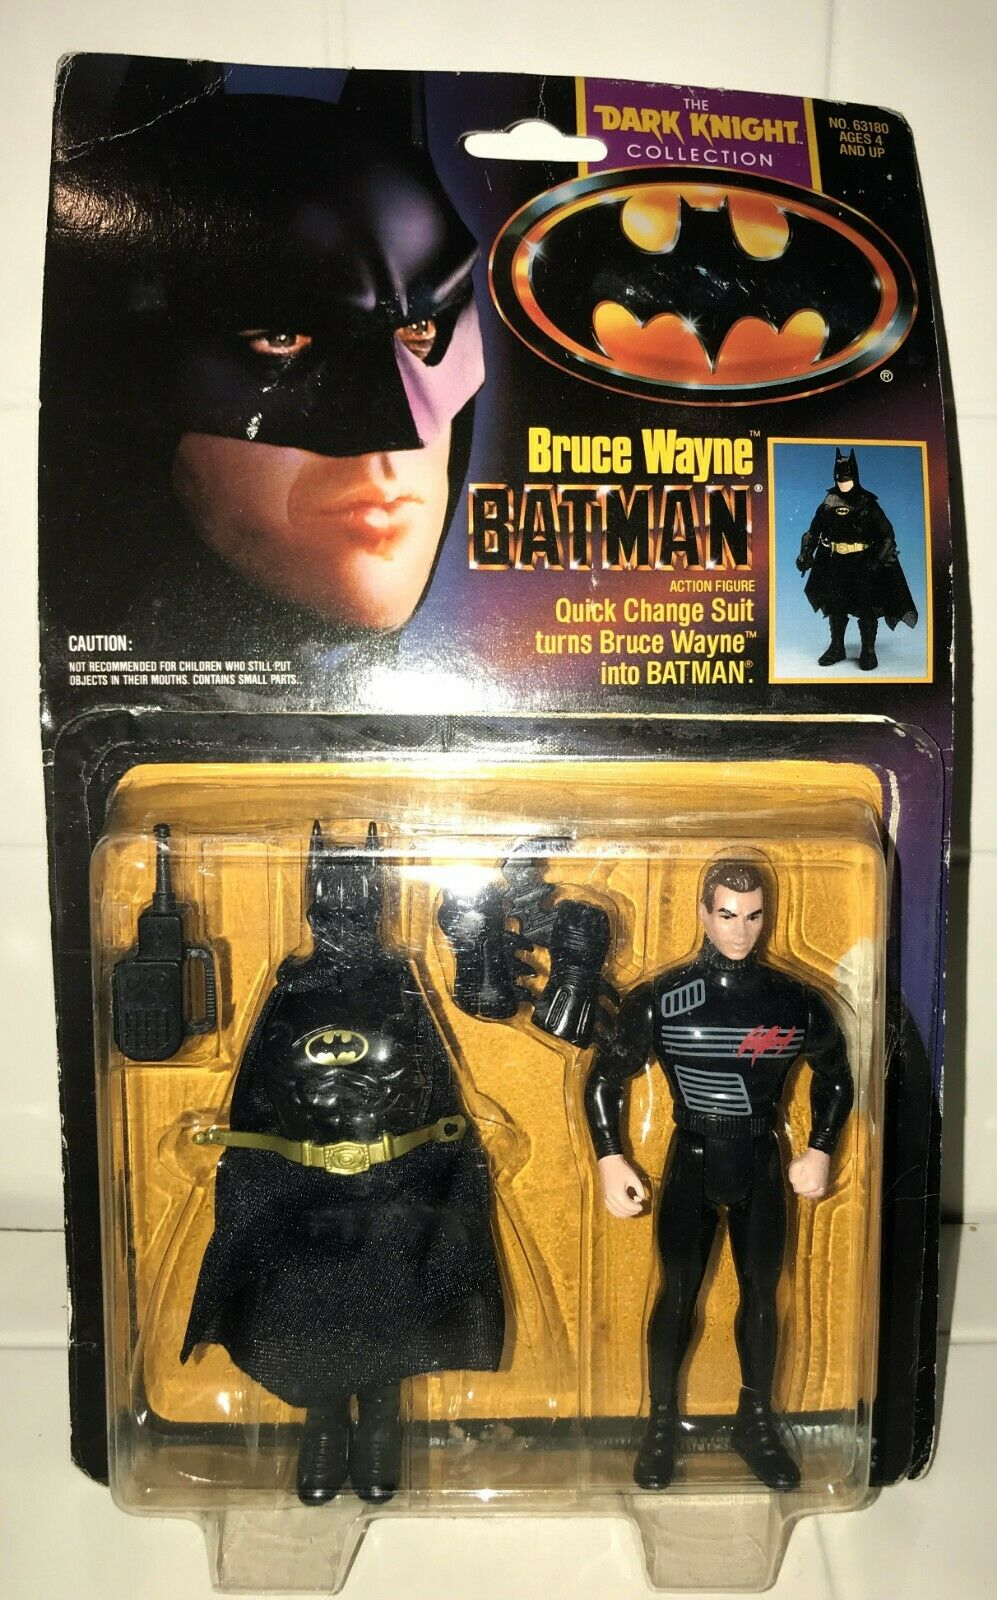 Bruce Wayne BATMAN - The Dark Knight Collection - Kenner - Loose On Card